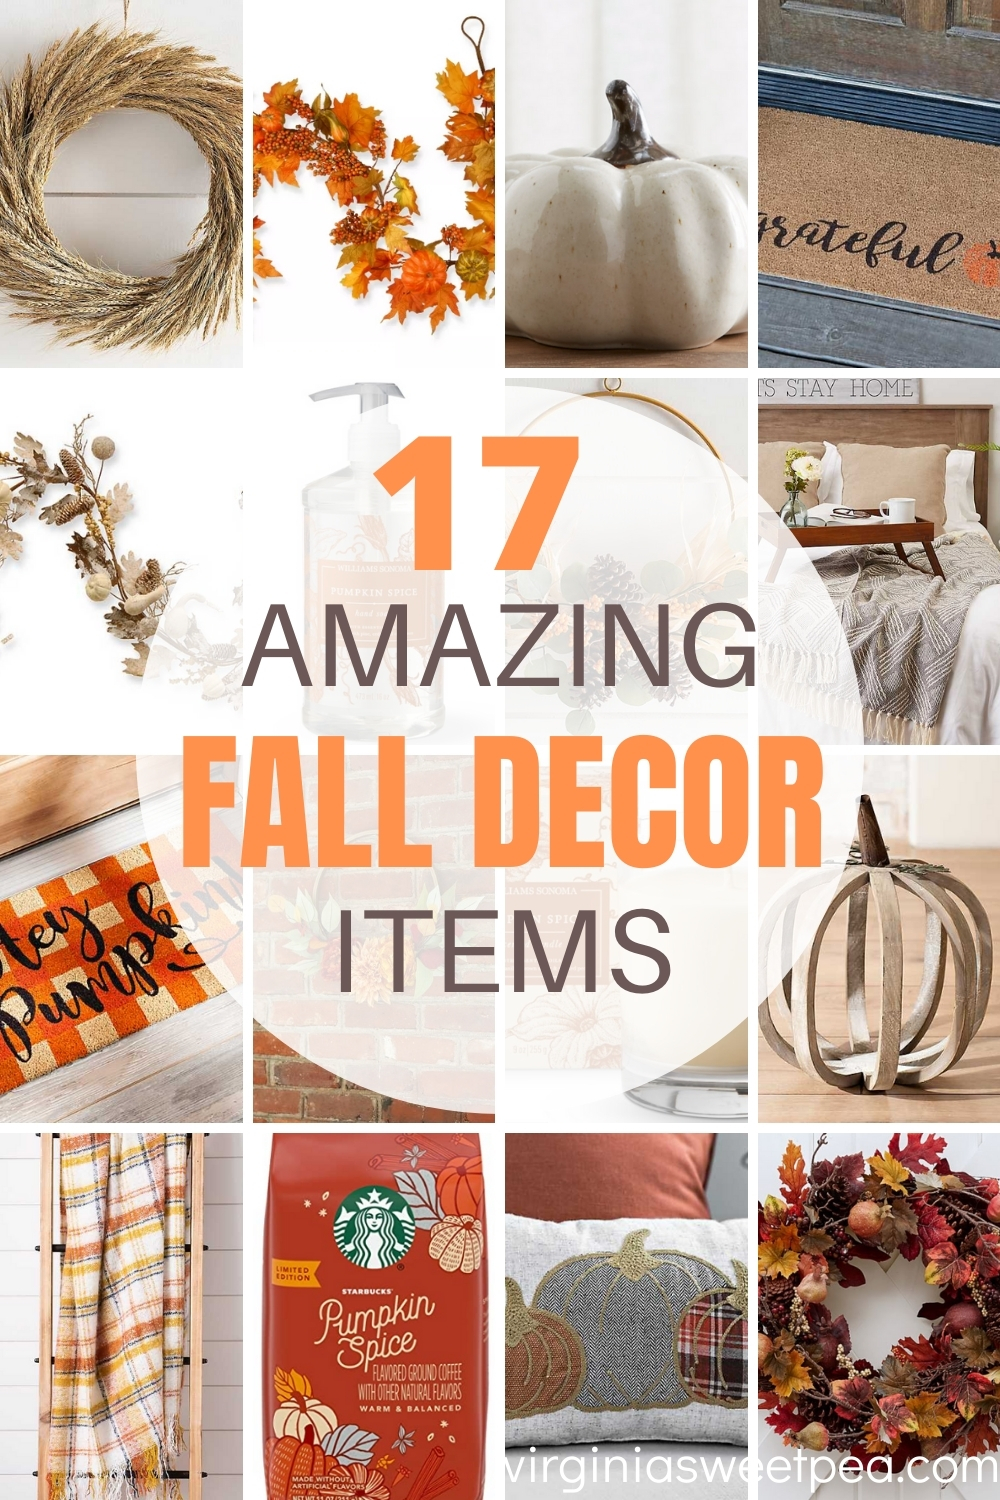 17 Amazing Fall Decor Items - Get ideas for decorating for fall with affordable decor.  Your home will look amazing!  #falldecor #falldecorations #farmhouse via @spaula